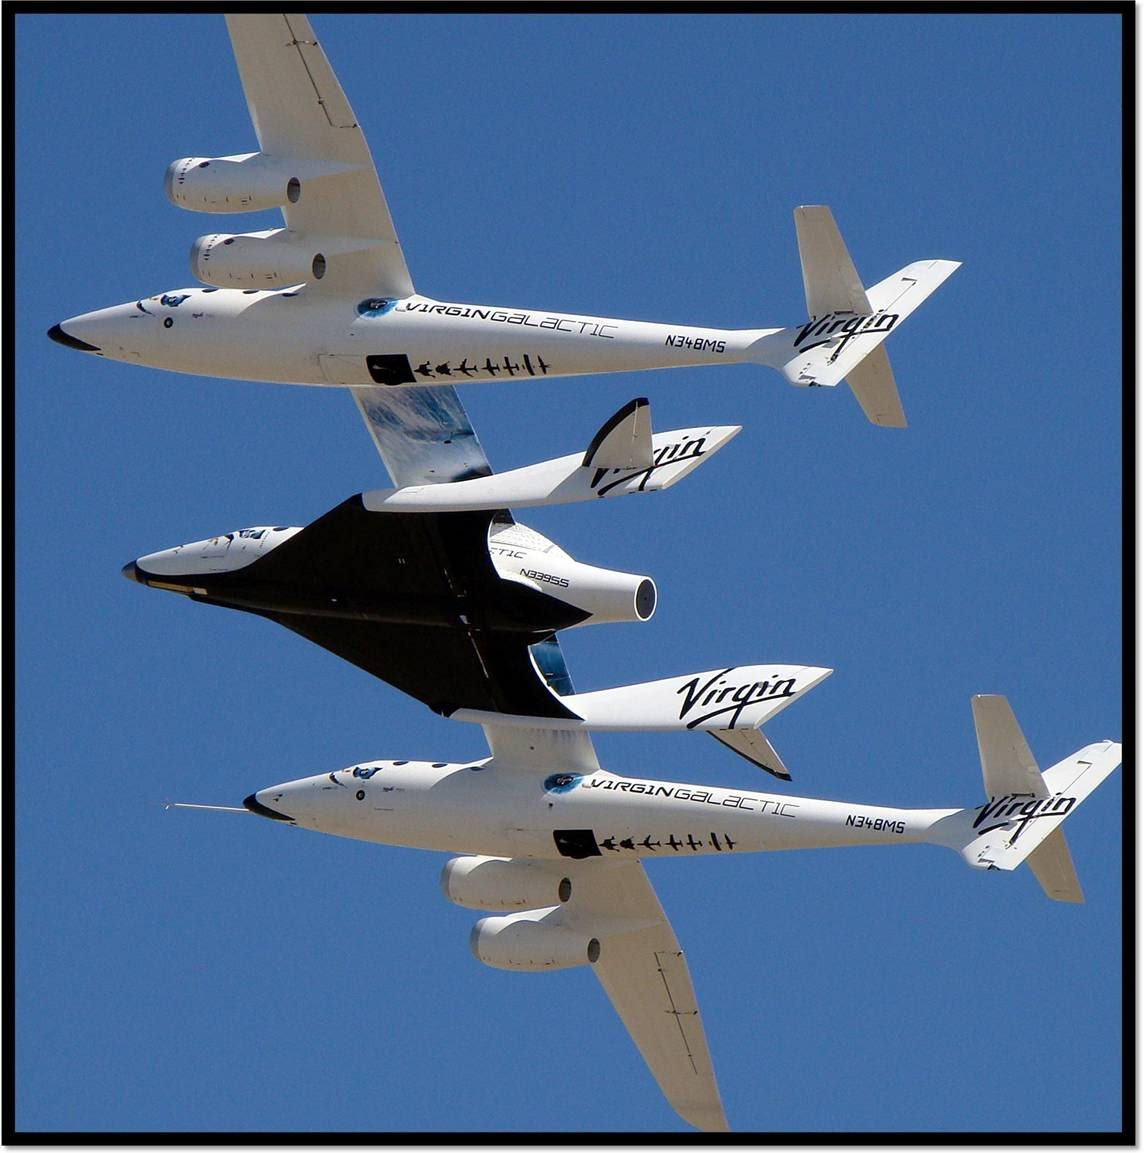 virgin galactic Virgin galactic's suborbital space plane vss unity just soared to new heights, and you can go along for the ride, thanks to a new video unity aced its third-ever rocket-powered test flight.